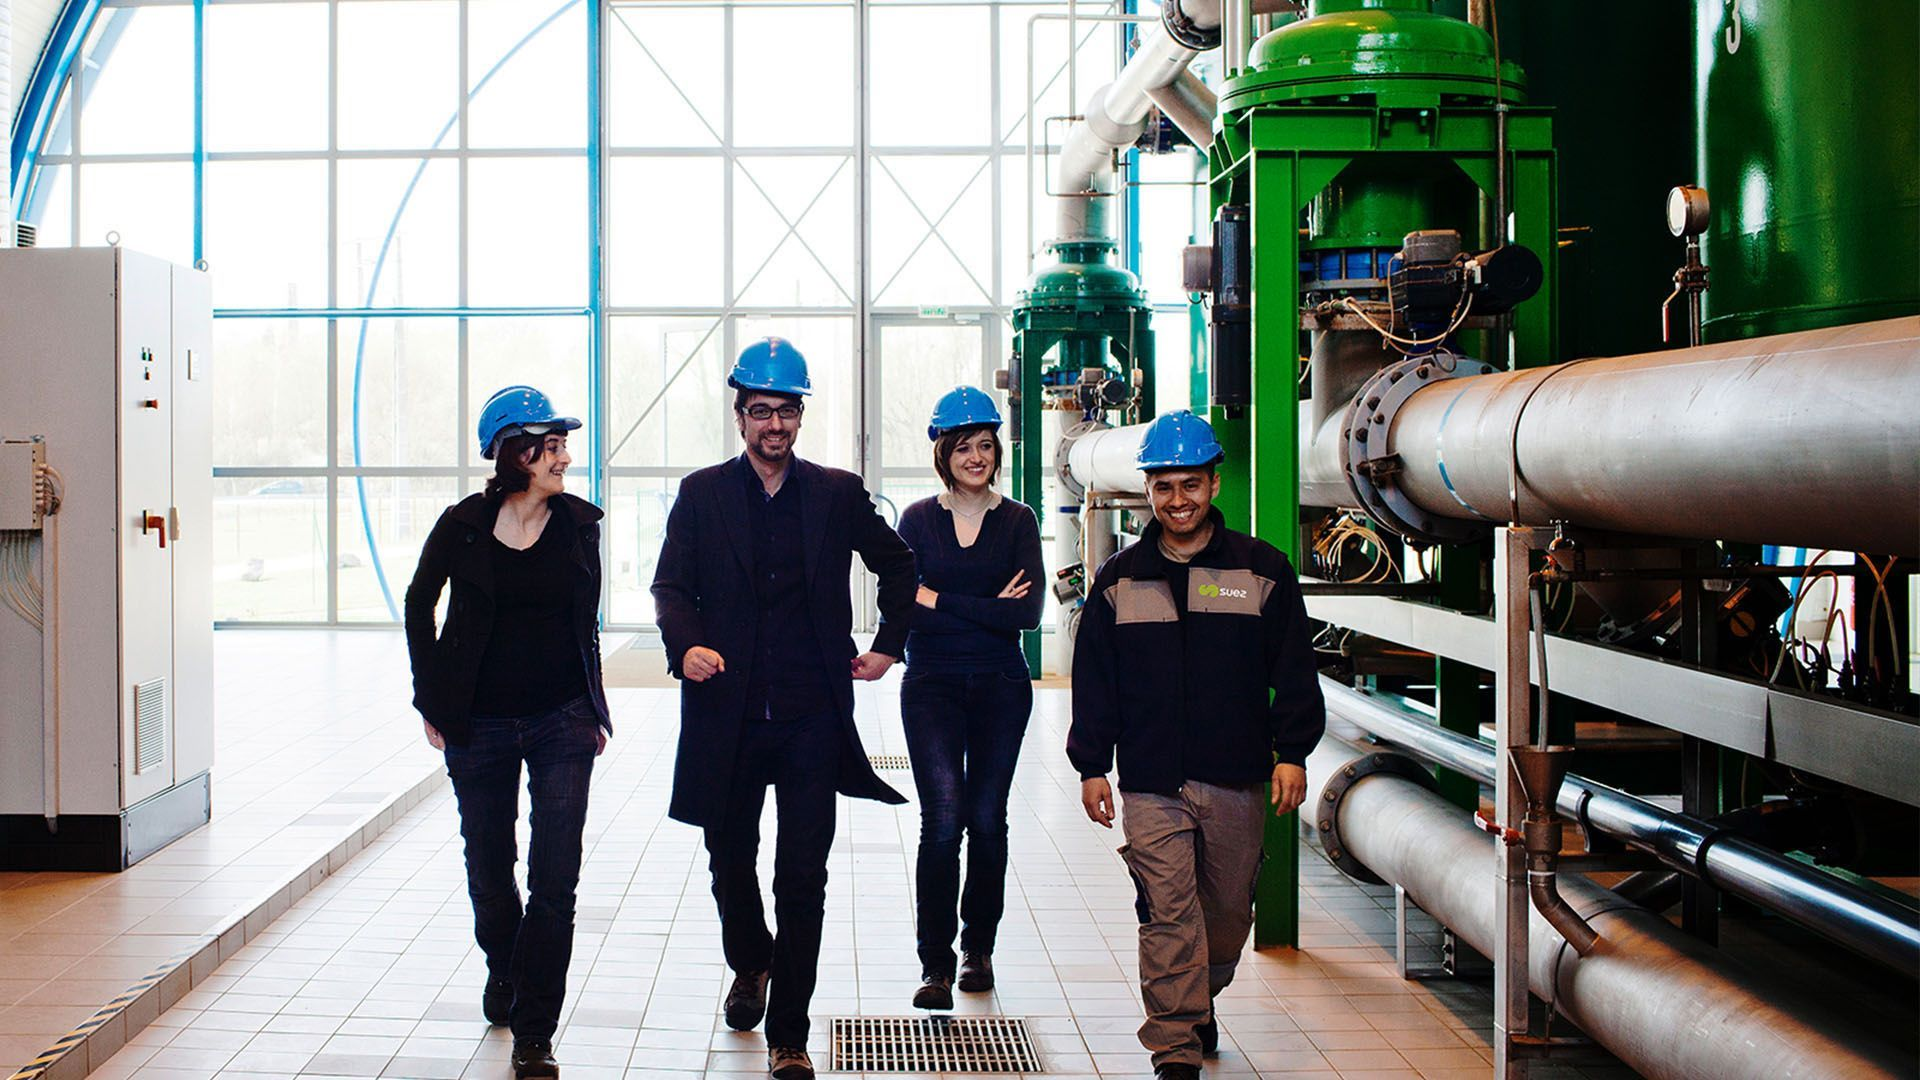 Employees walking round facility